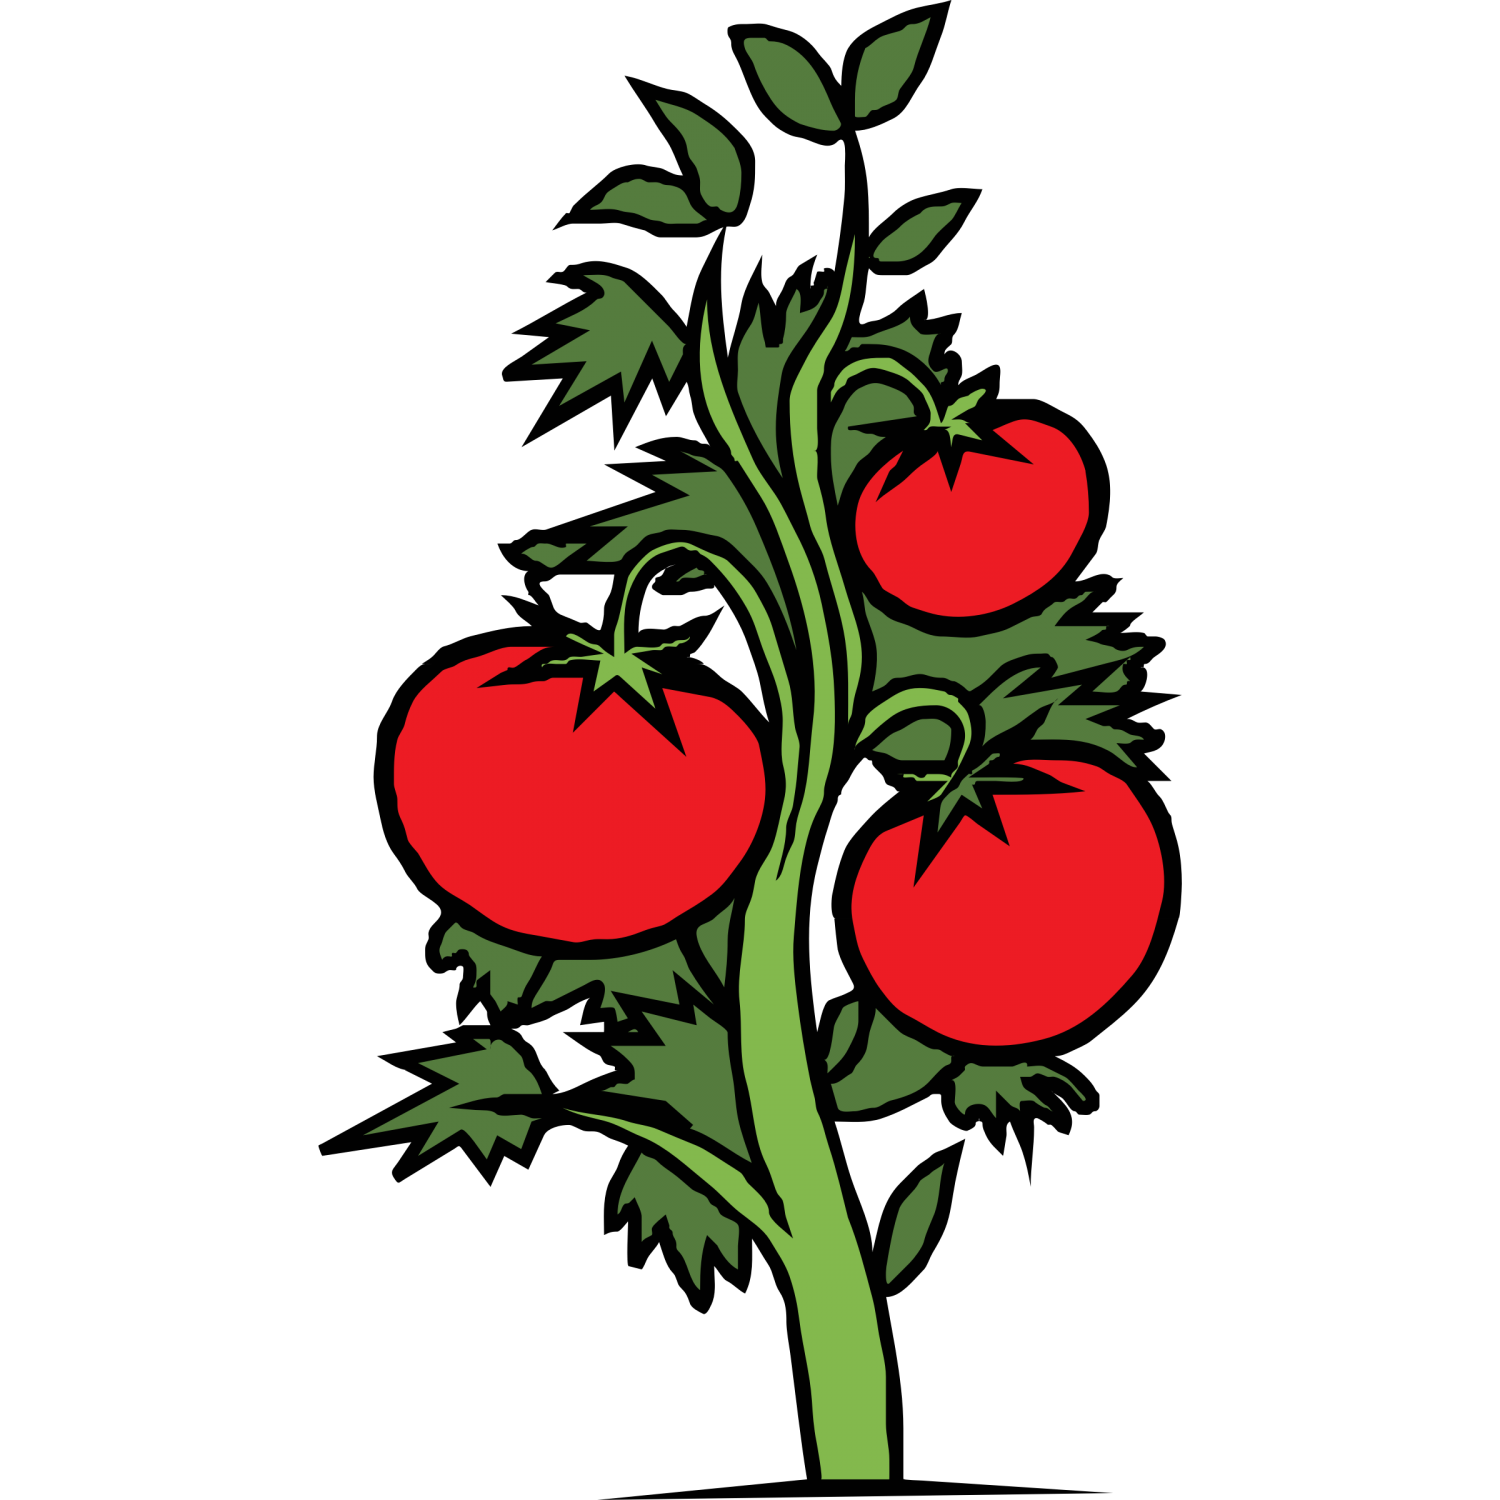 Tomatoes clipart coloured. Tomato plant drawing at